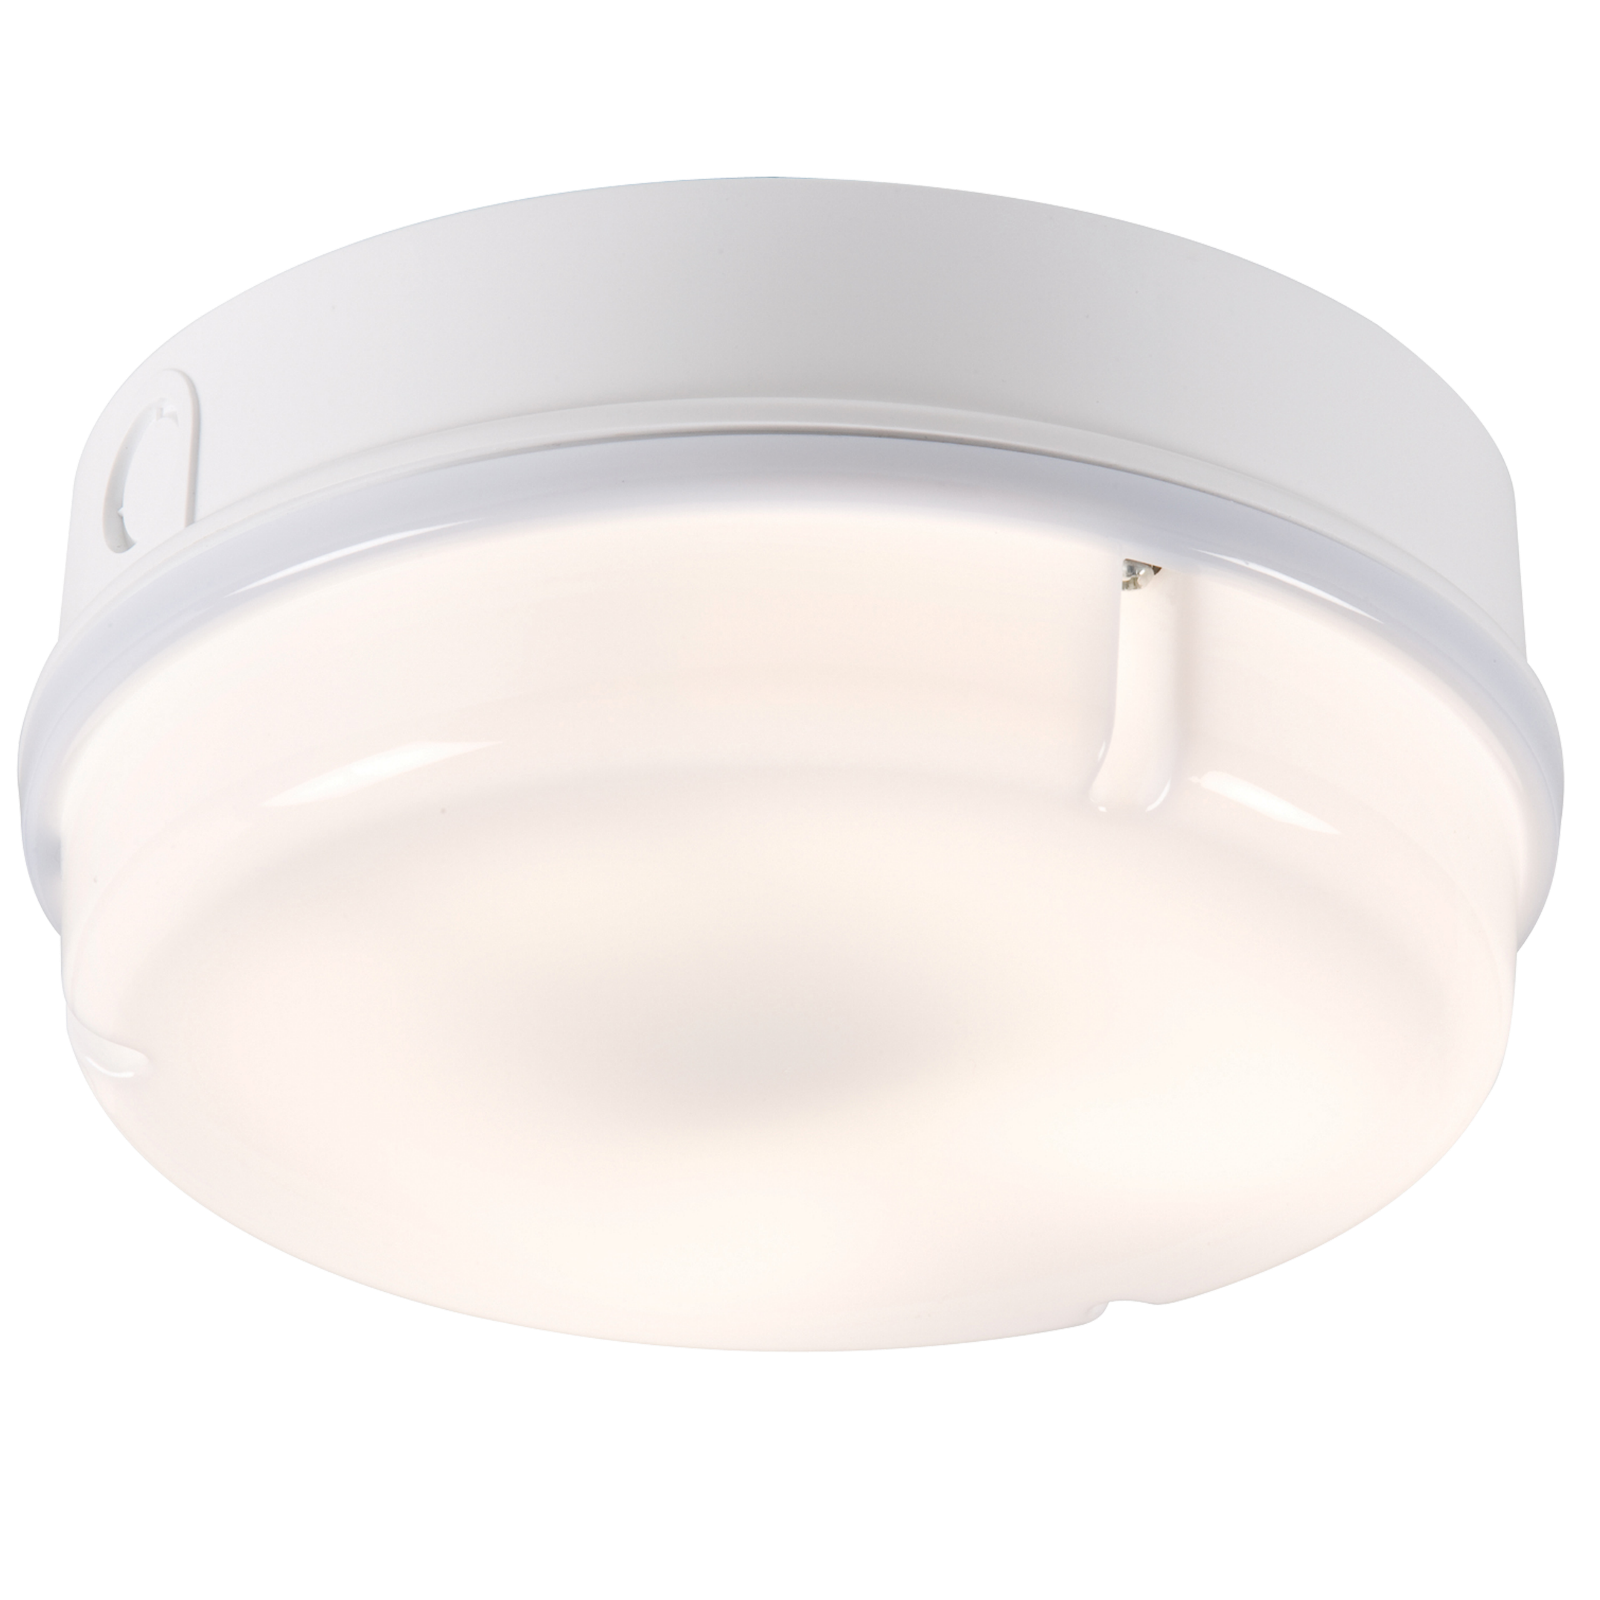 IP65 28W HF Round Bulkhead with Opal Diffuser and White Base